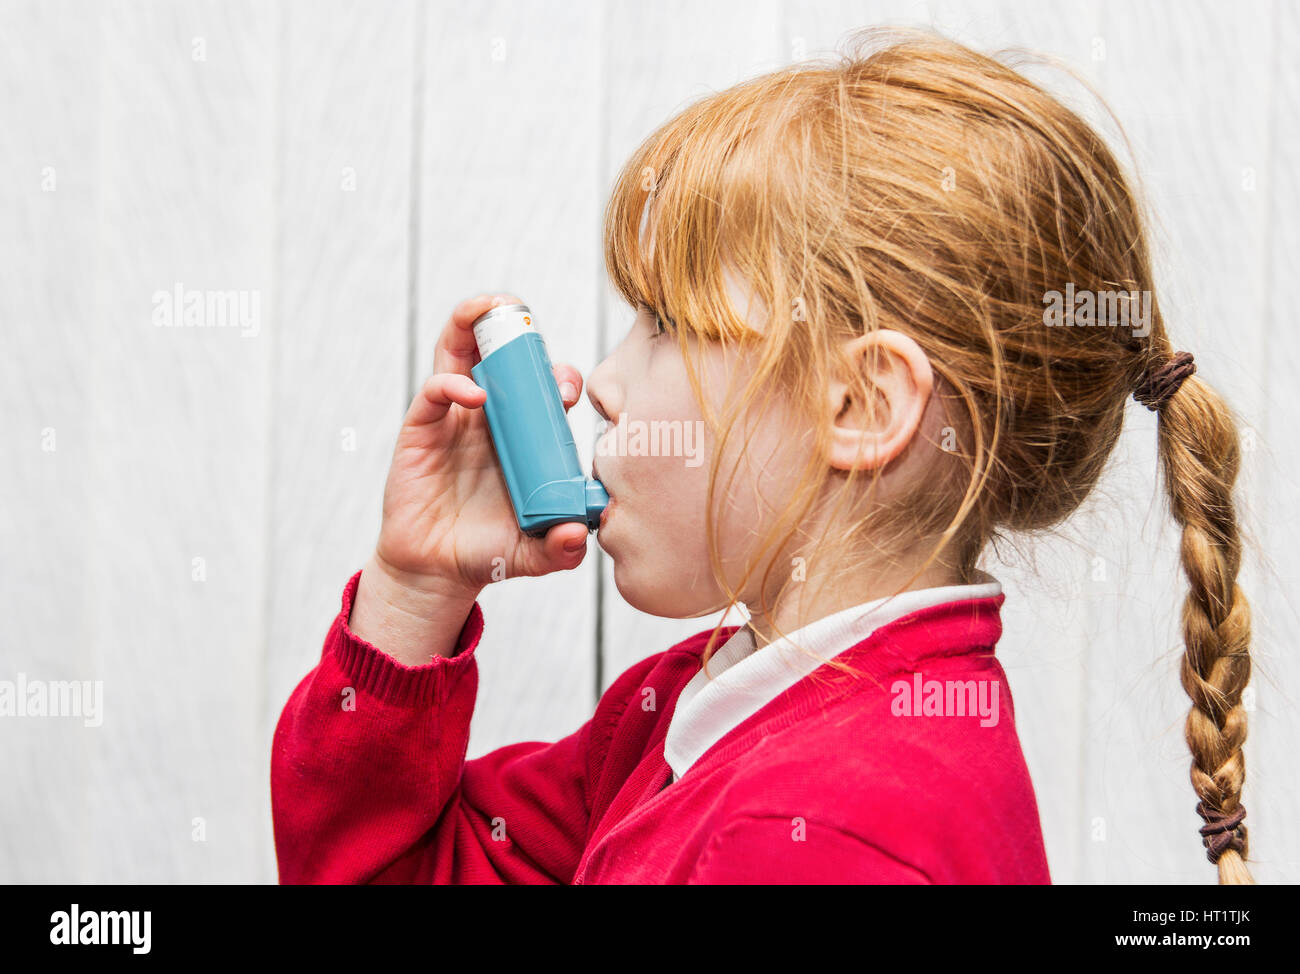 Ventolin asthma inhaler use by 7 year old Caucasian girl - Stock Image